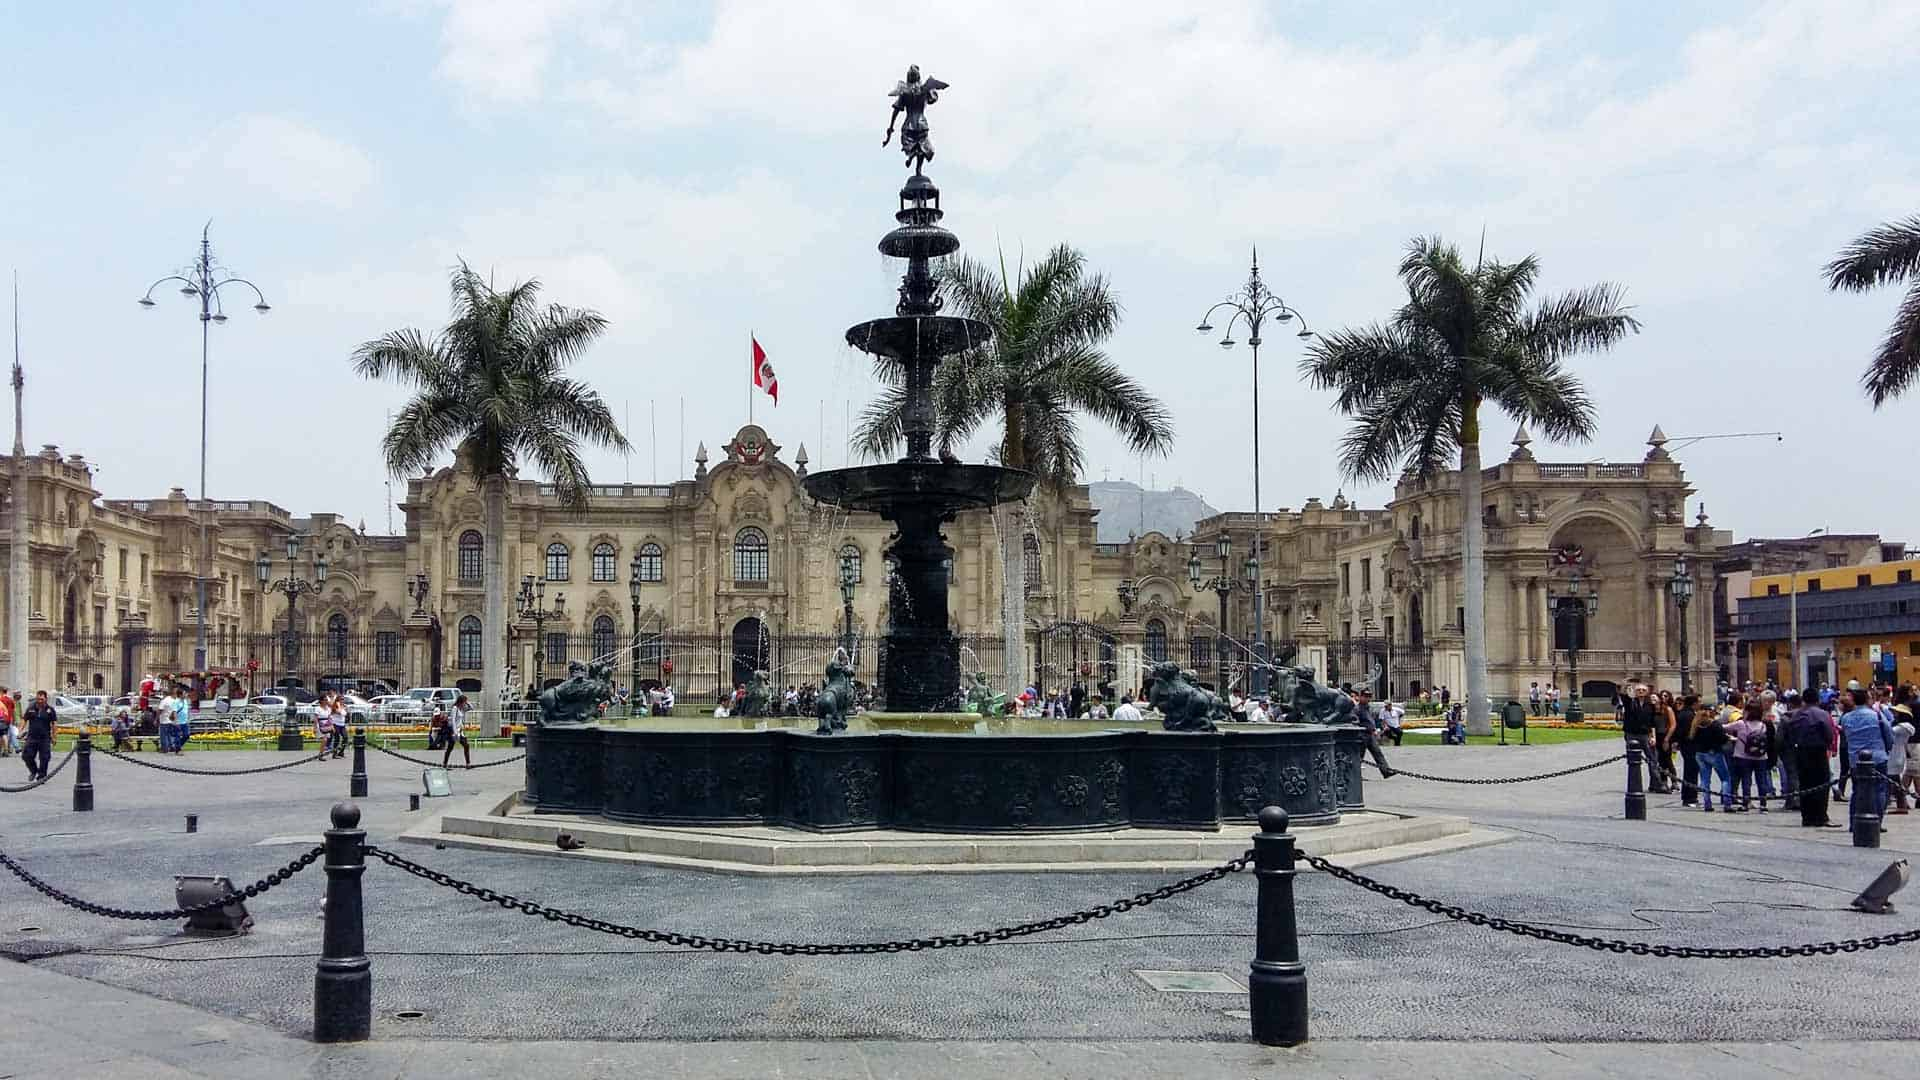 Fountain at Lima Old Town, Peru